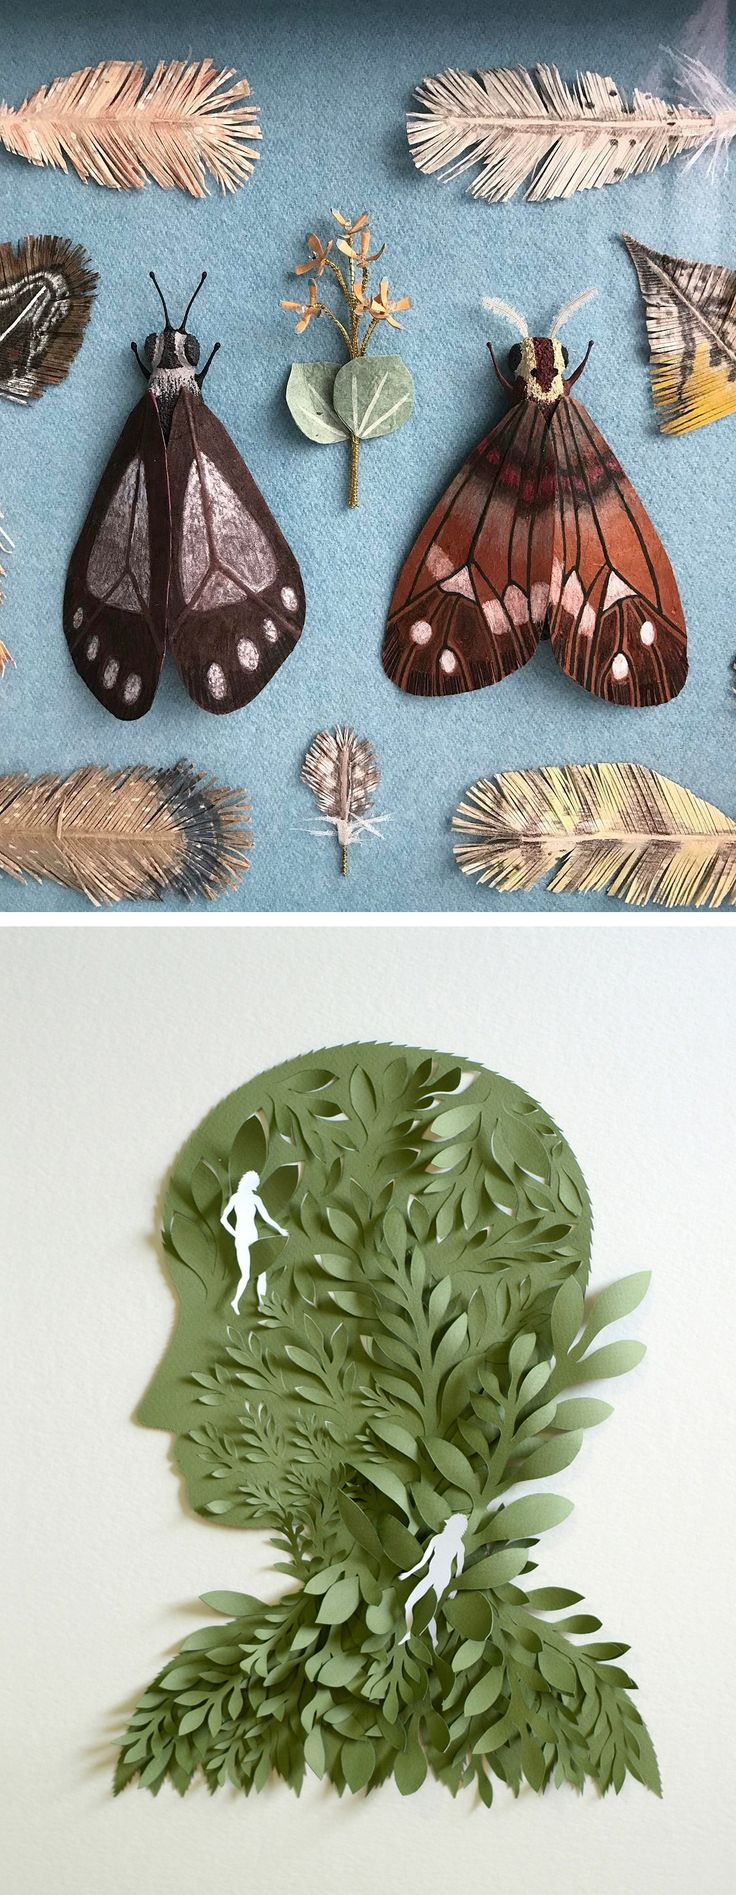 White Cut Paper Illustration: 25+ Unique Cut Paper Art Ideas On Pinterest